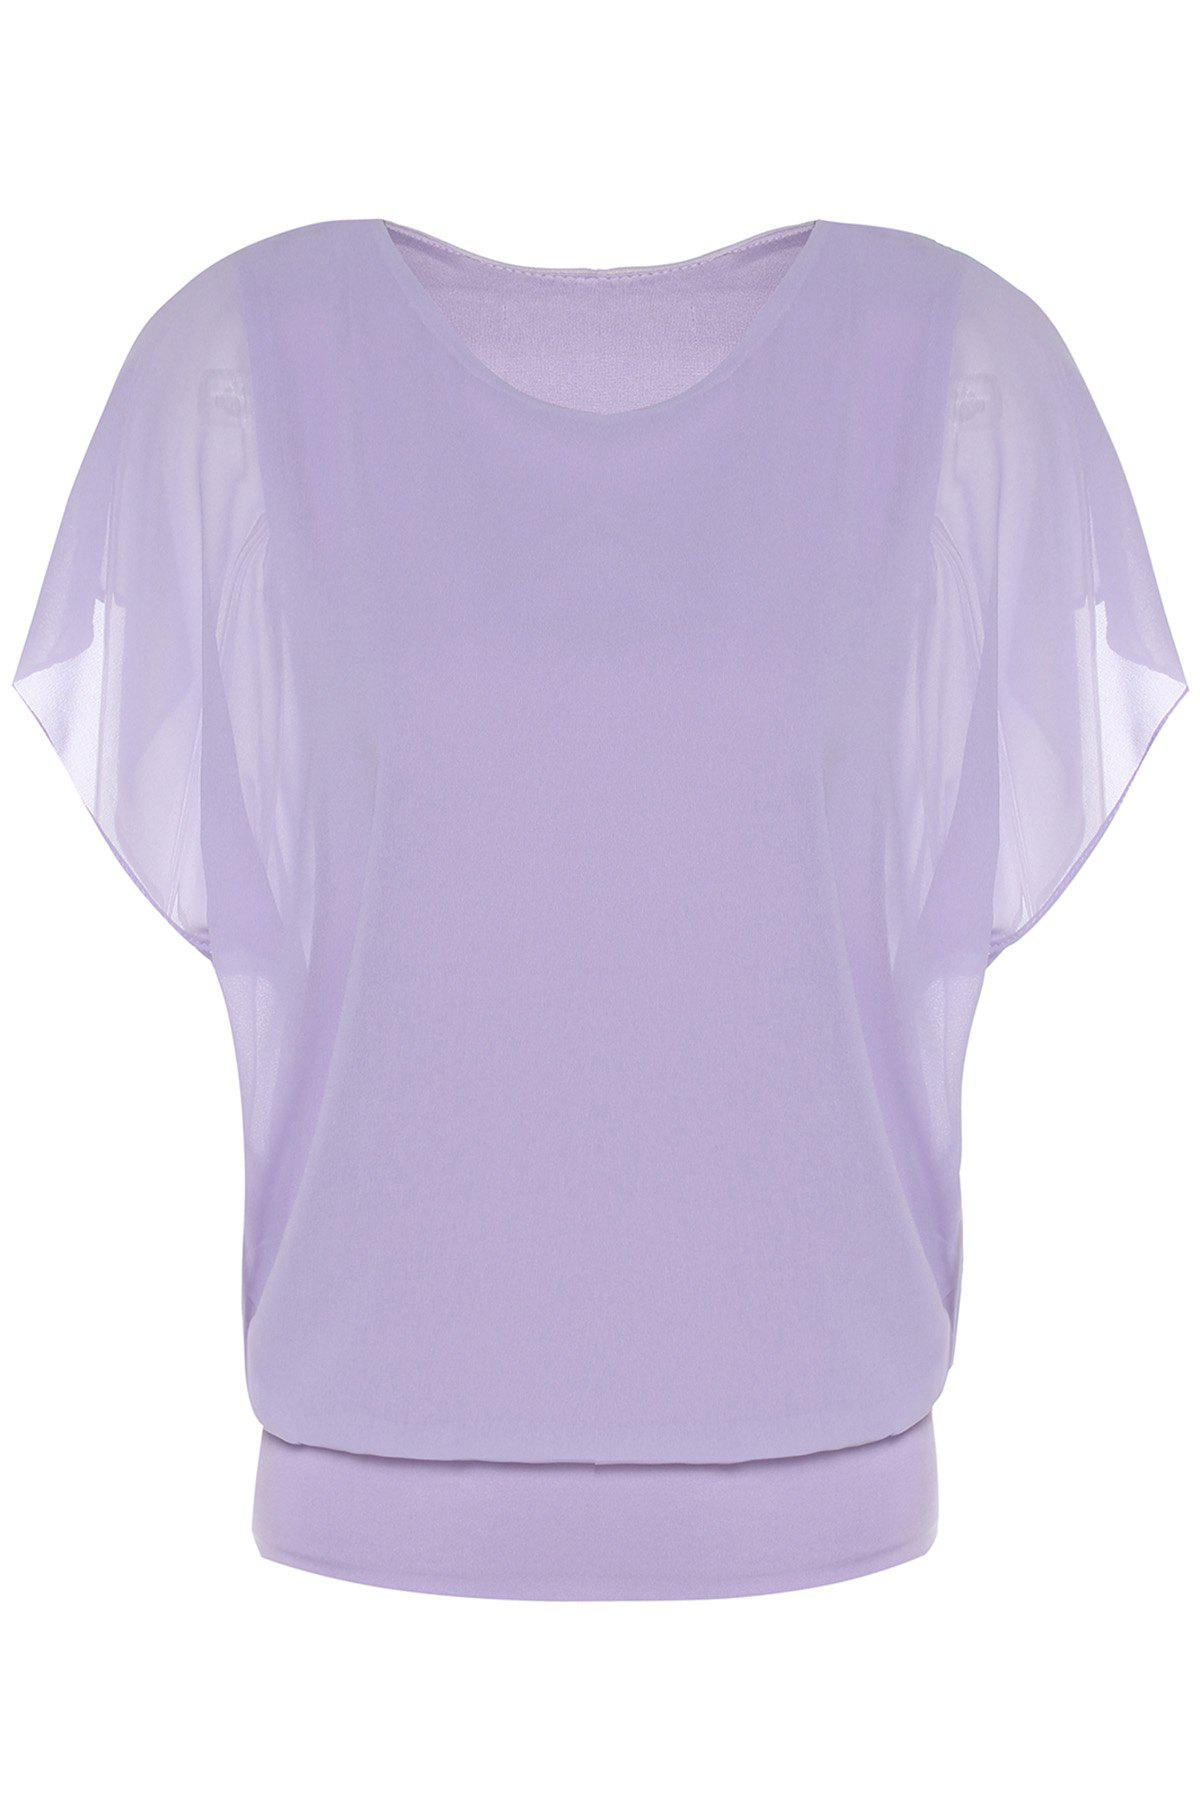 Stylish Women's Scoop Neck Dolman Sleeve Chiffon Blouse - VIOLET S